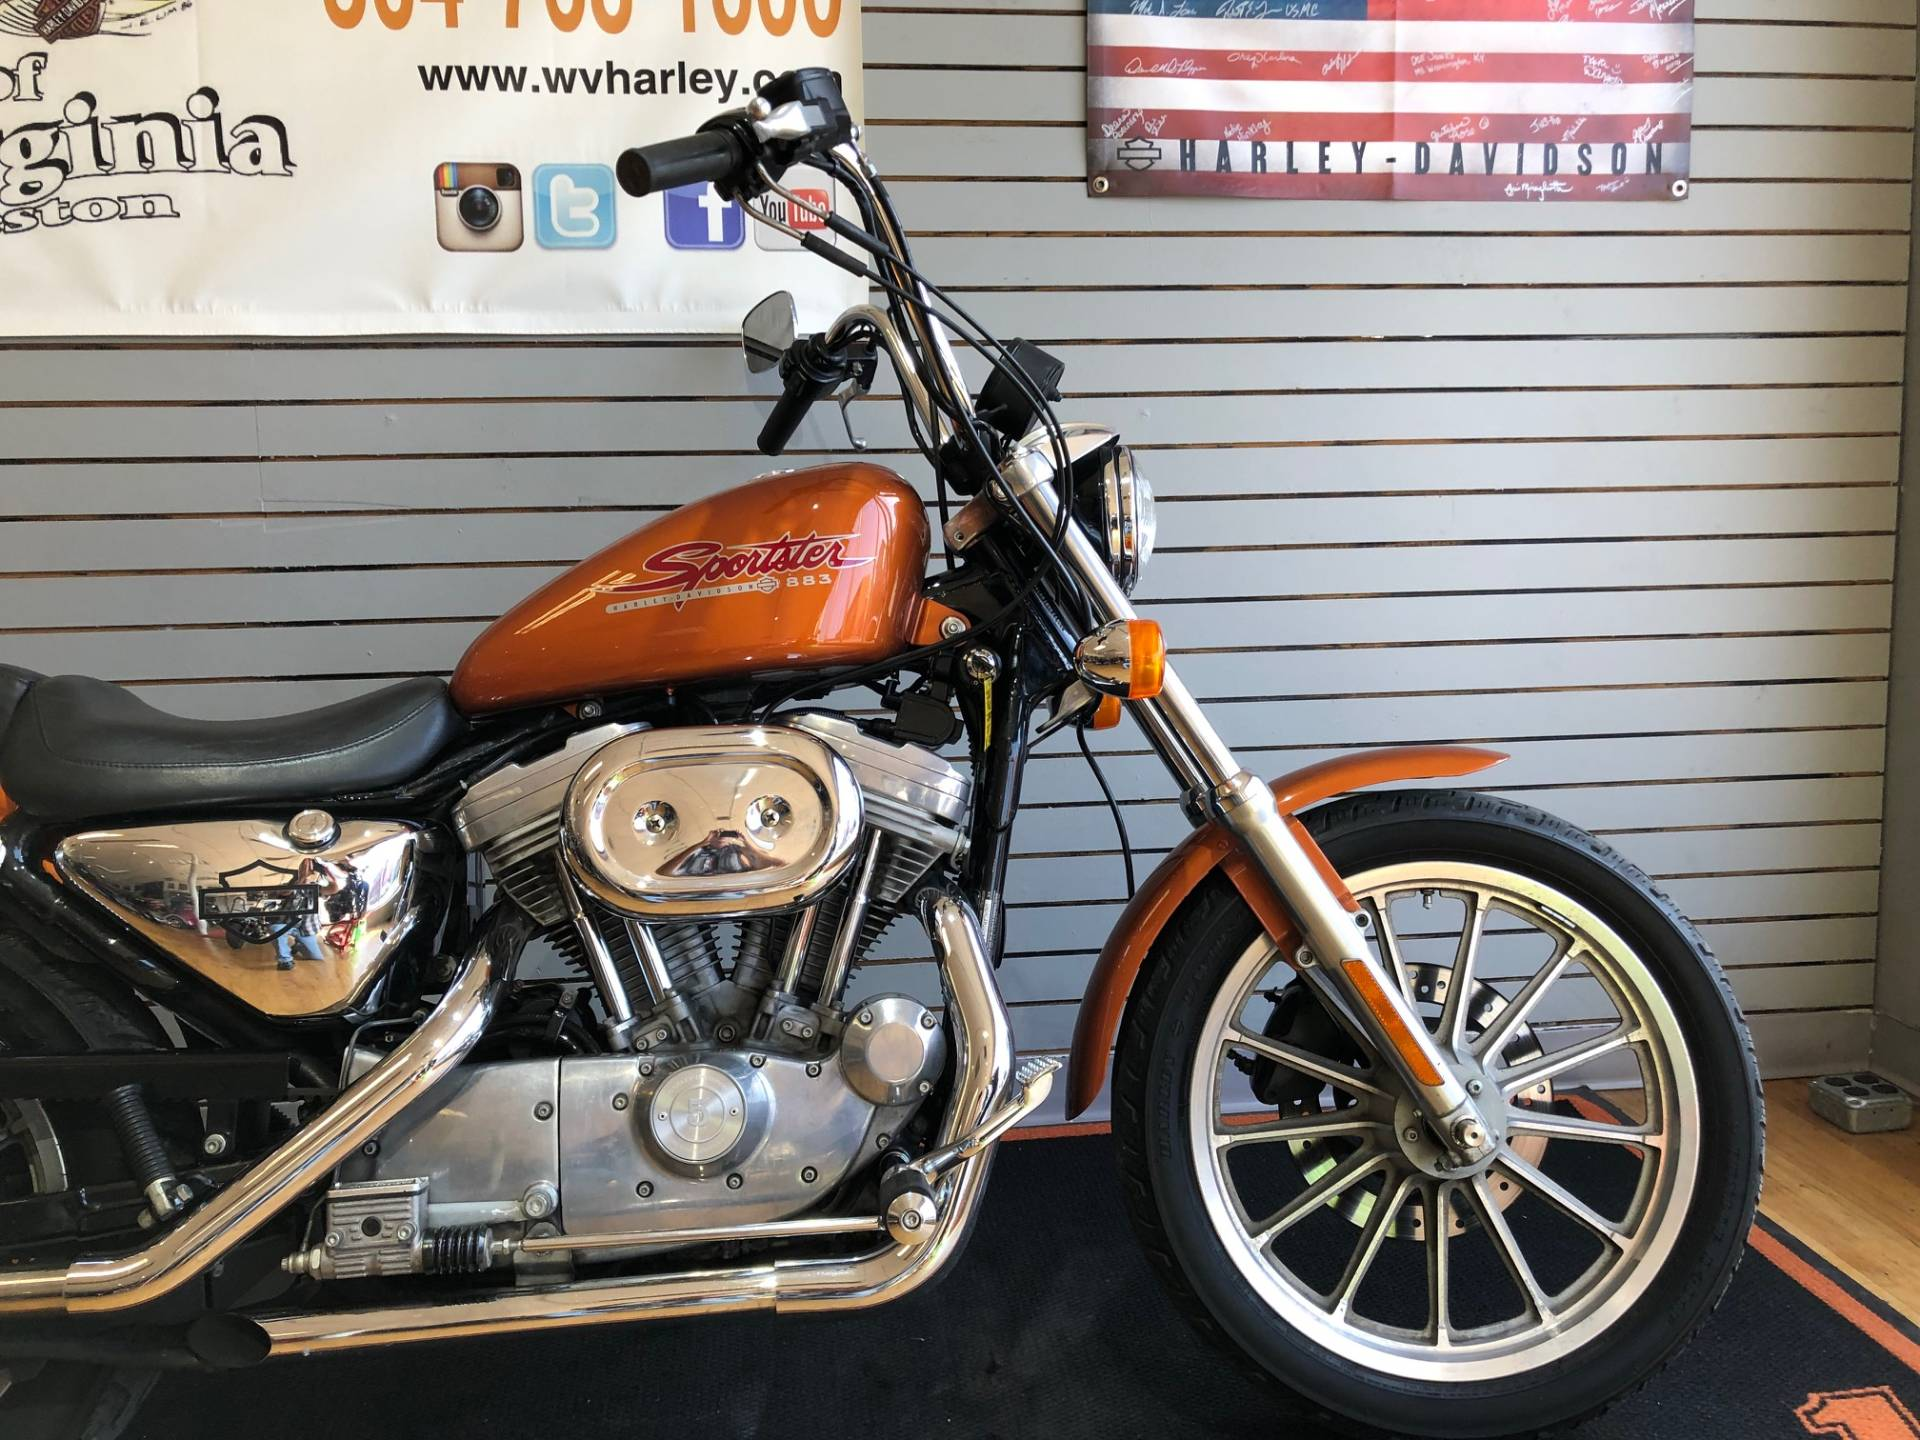 2000 Harley-Davidson XLH Sportster® 883 in South Charleston, West Virginia - Photo 2